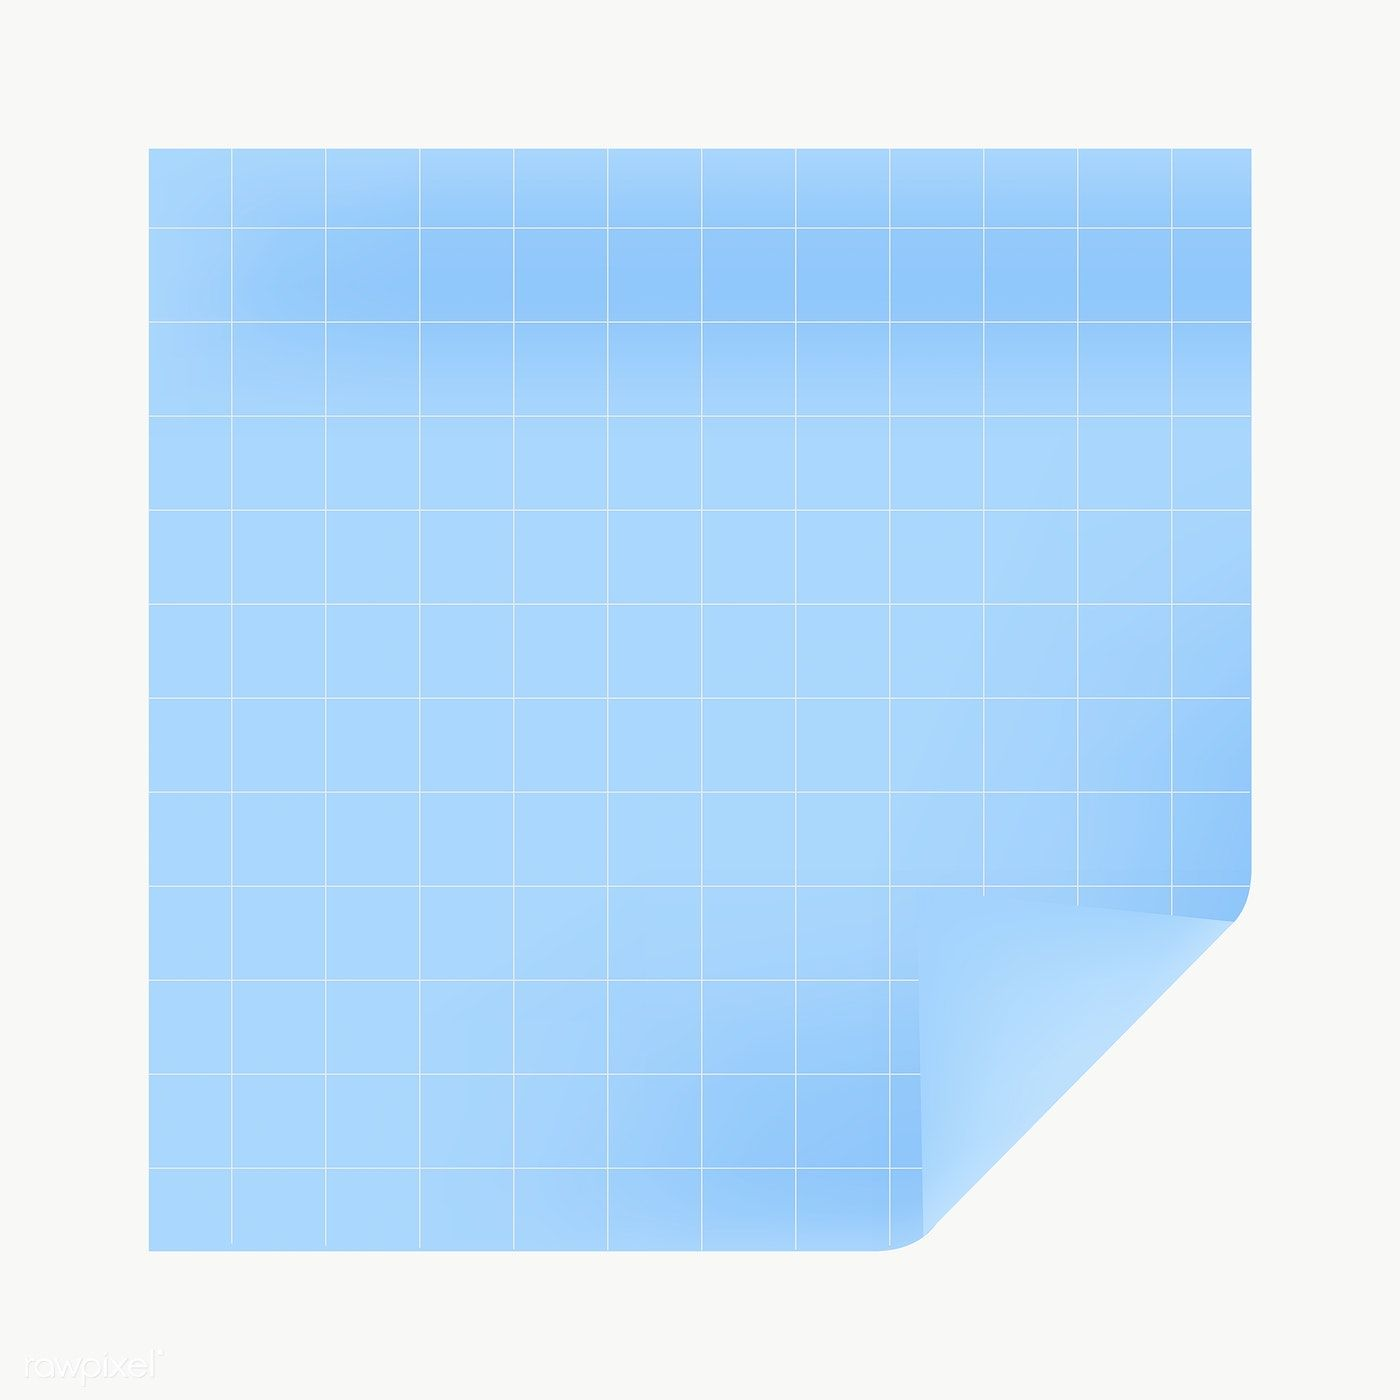 Blue Square Paper Note Social Ads Template Transparent Png Free Image By Rawpixel Com Manotang Note Paper Social Ads Square Paper